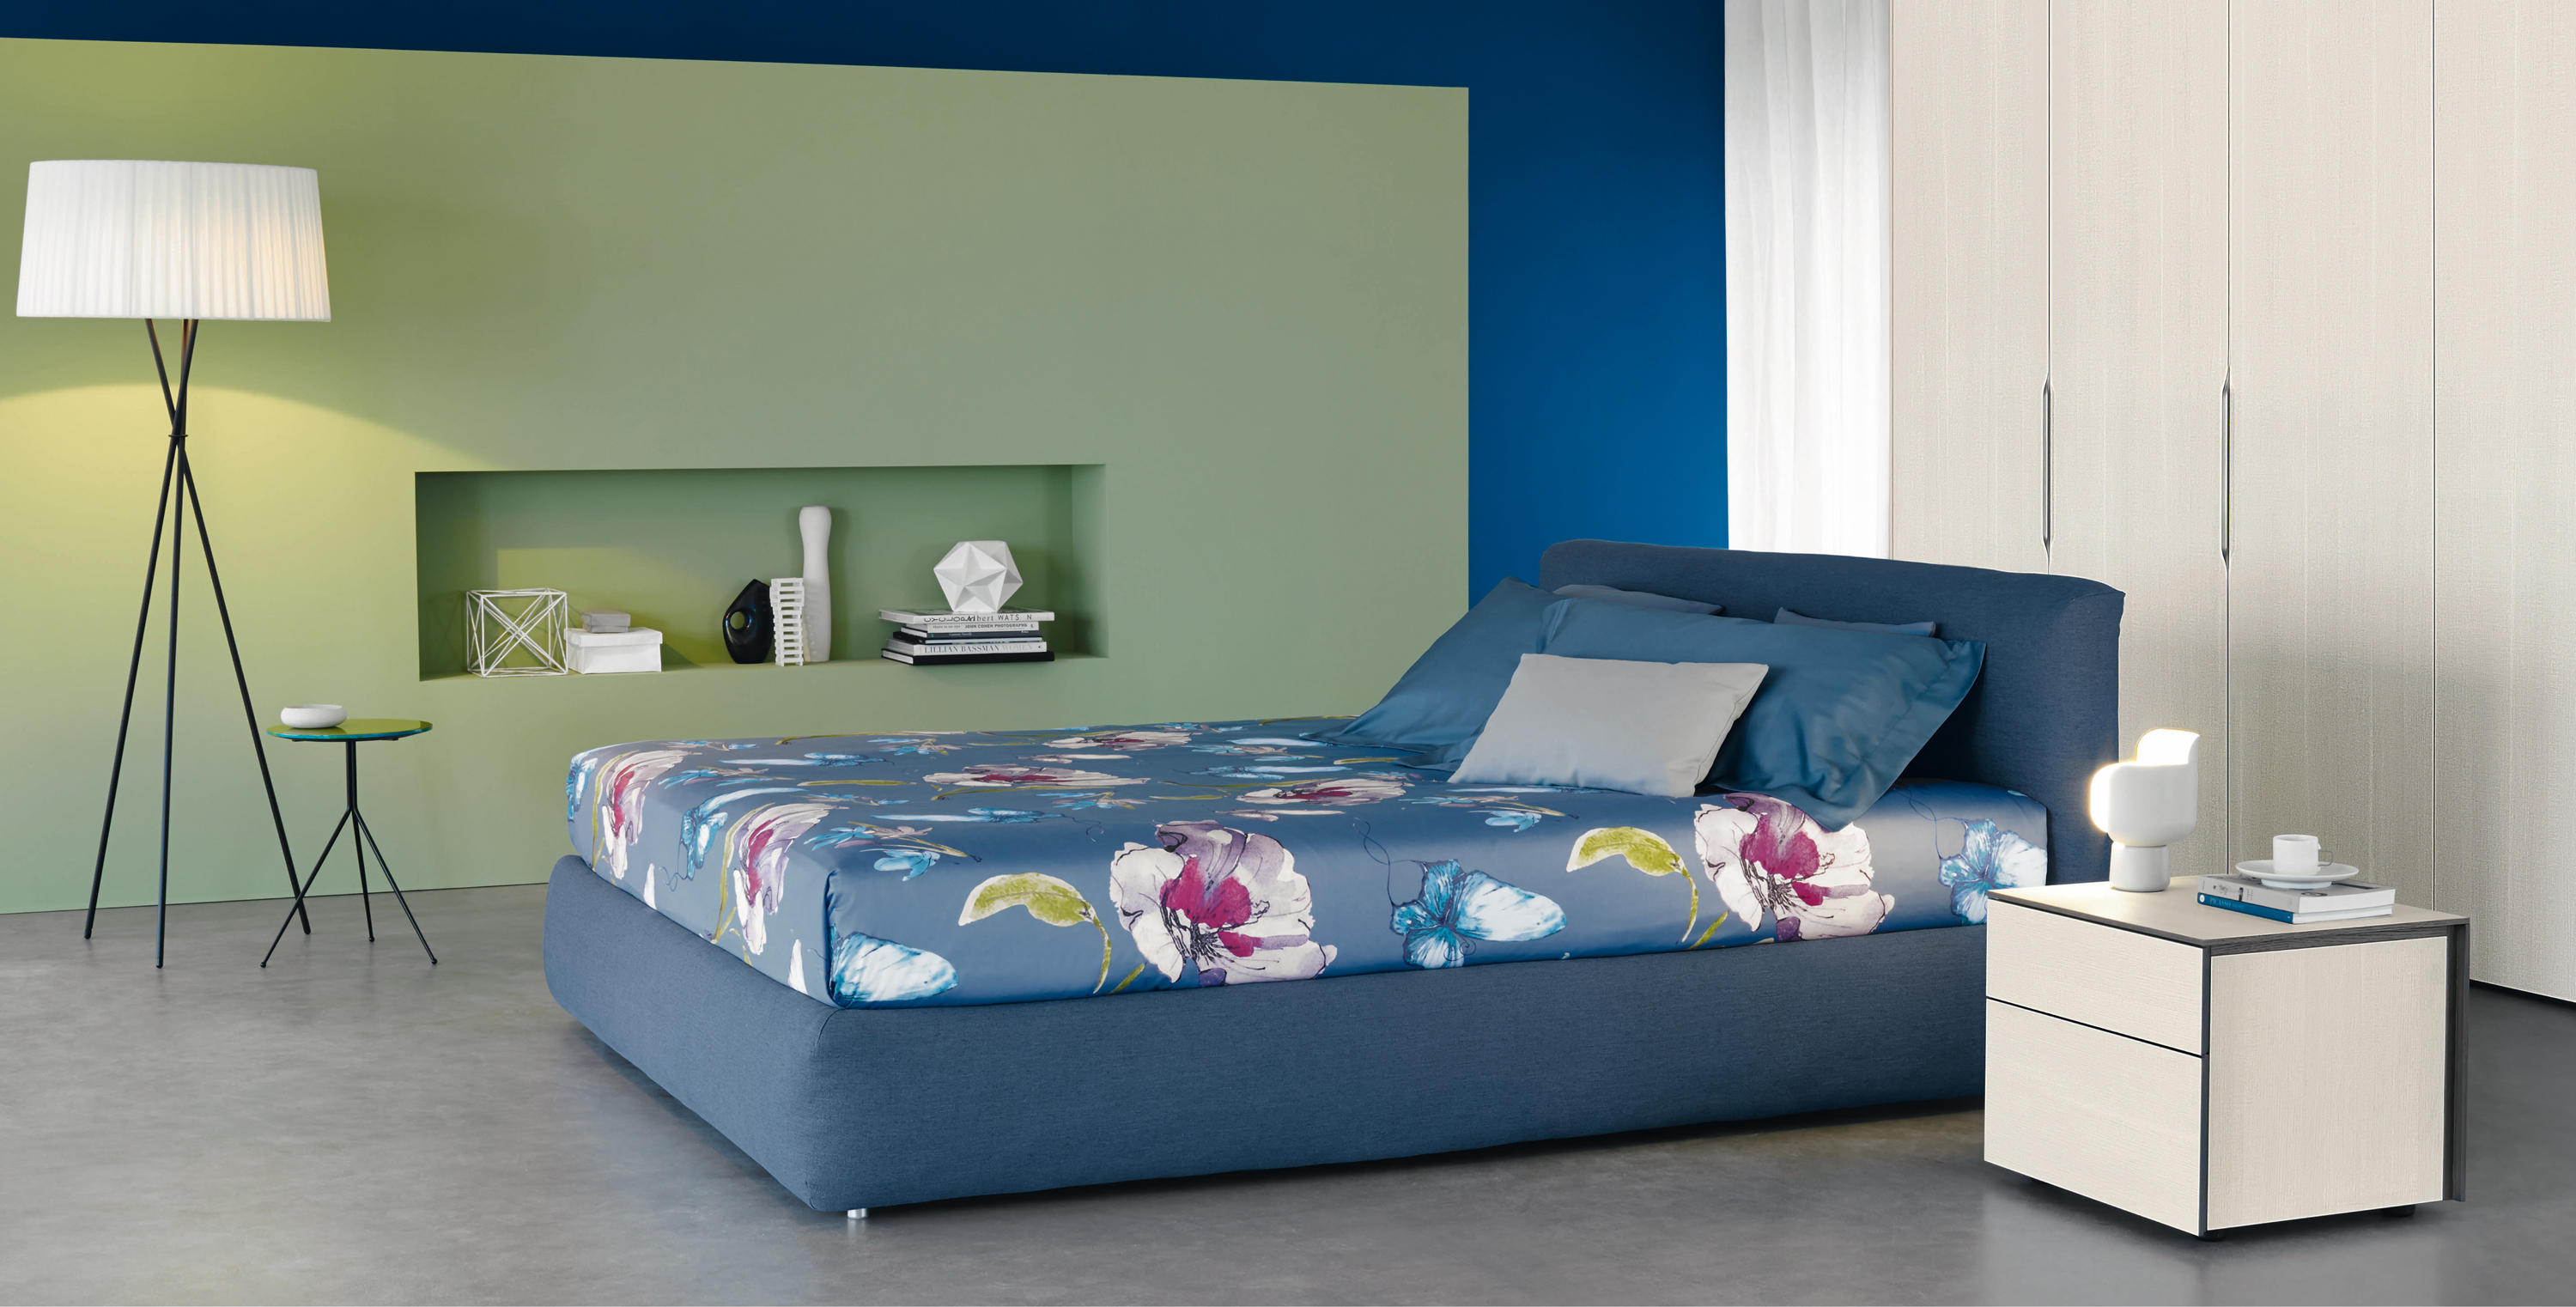 MERKURIO DOUBLE - Double beds from Flou | Architonic